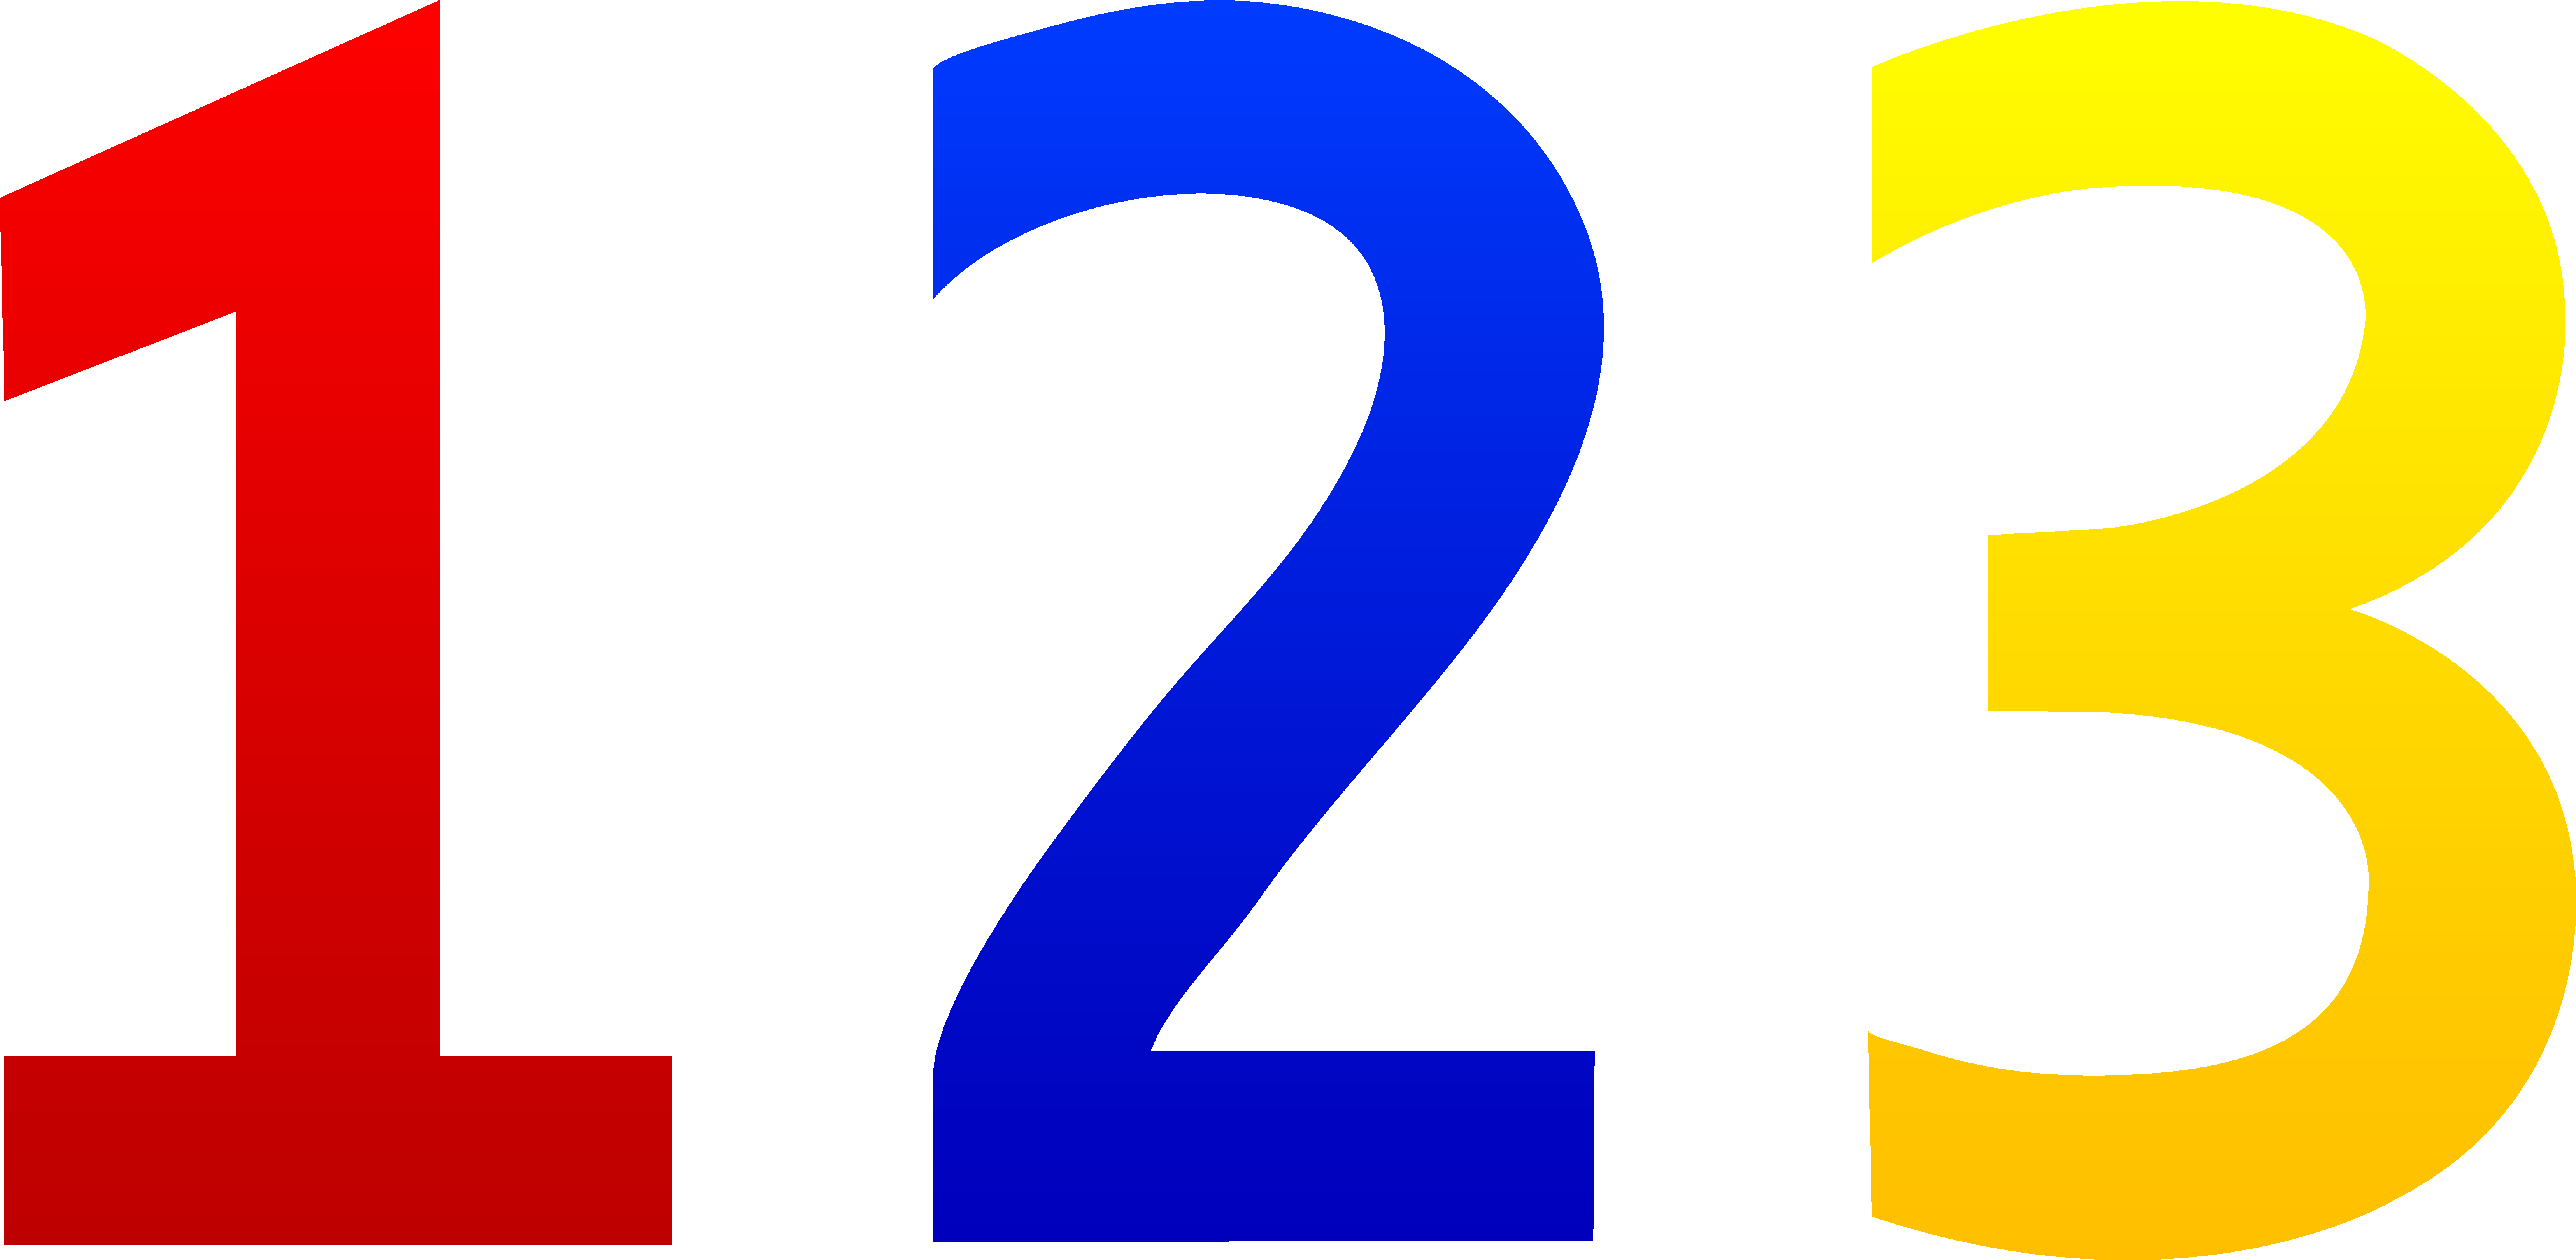 Numbers Clipart 0-Numbers Clipart 0-17